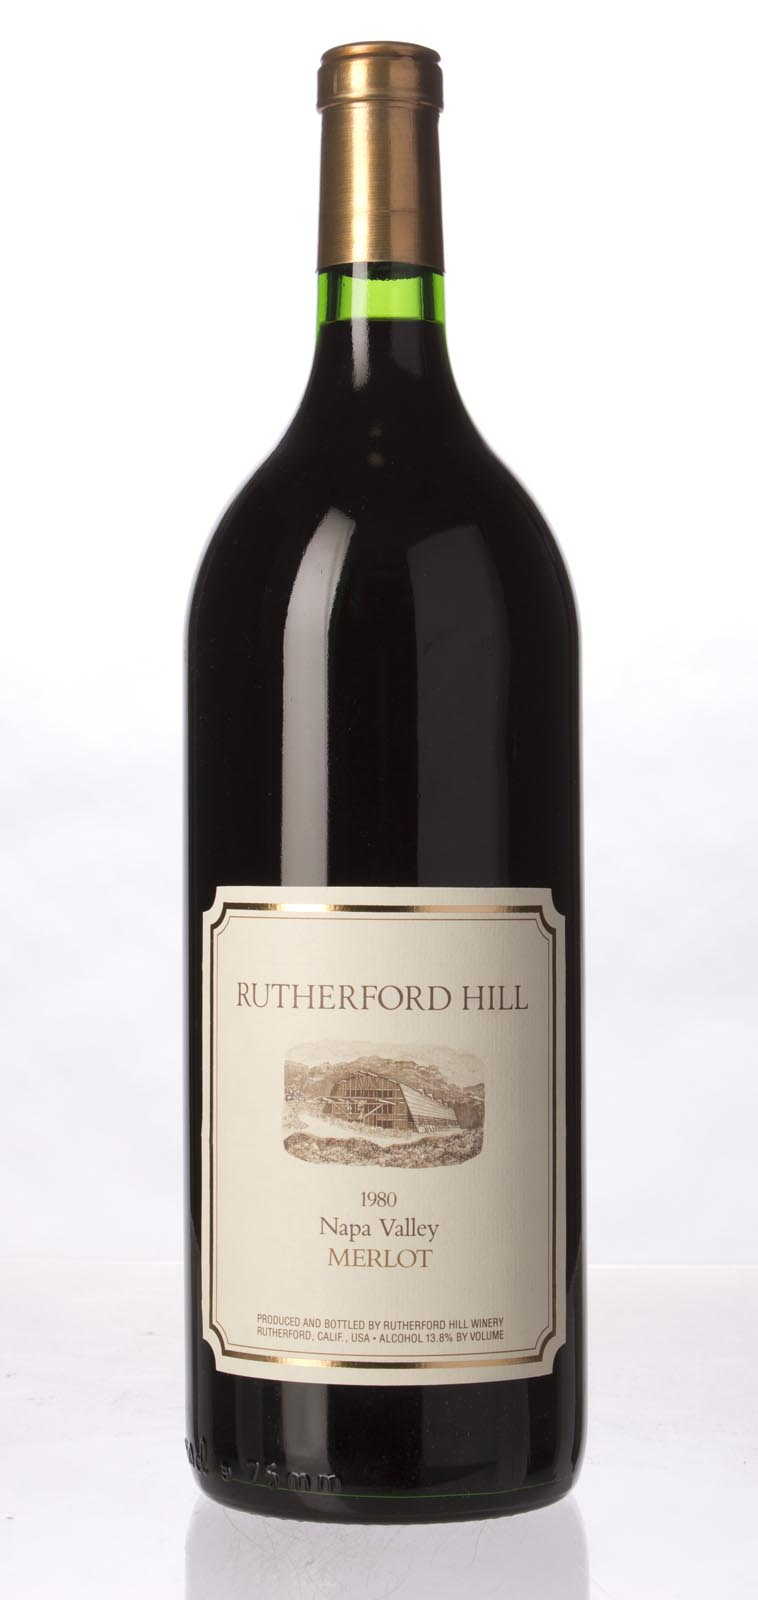 Rutherford Hill Merlot 1980, 1.5L () from The BPW - Merchants of rare and fine wines.